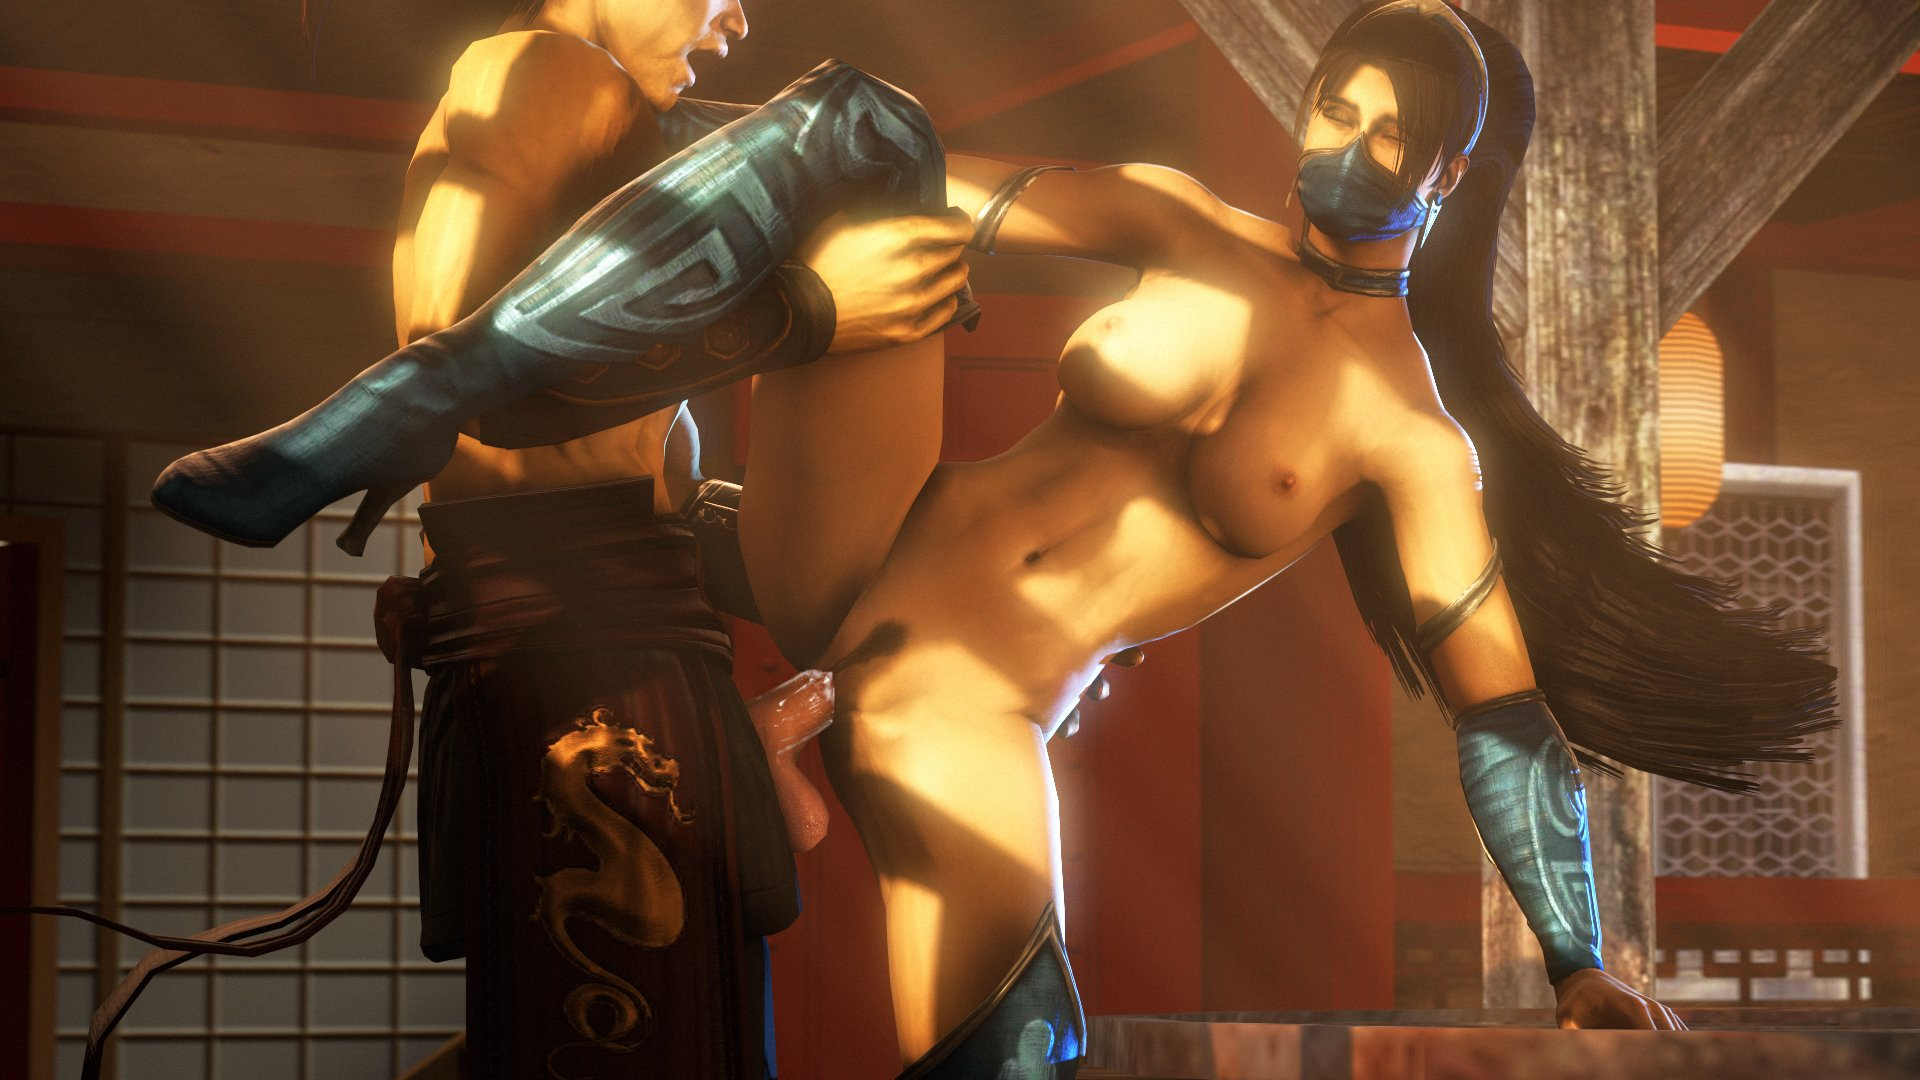 Are not Mortal kombat sexy kitana naked